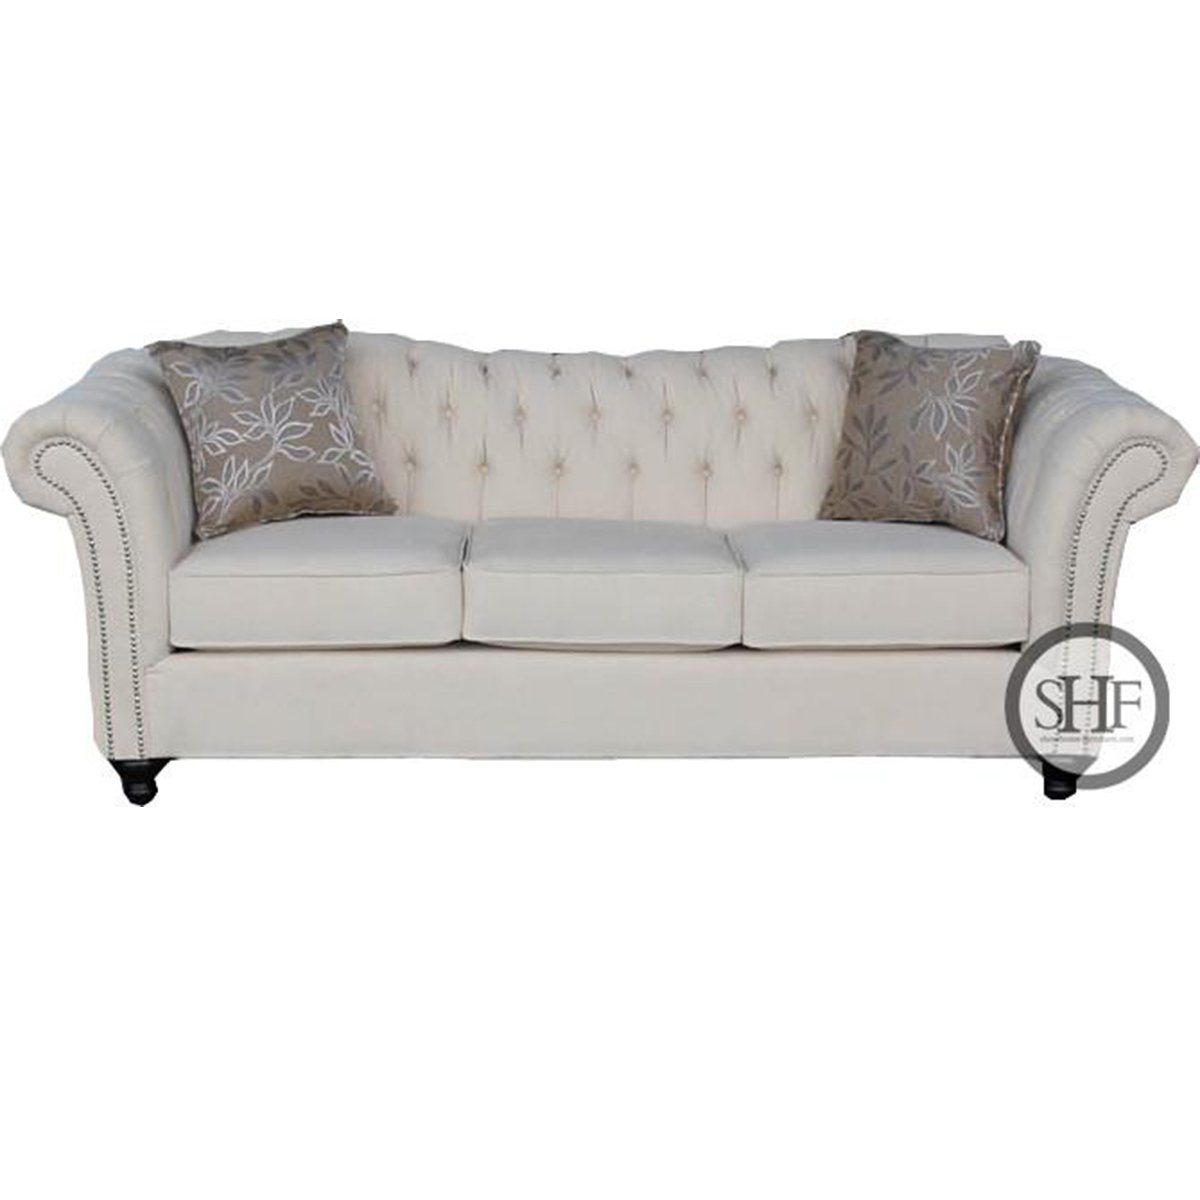 Custom Sofa - Made in Canada Facebook Special - Showhome Furniture